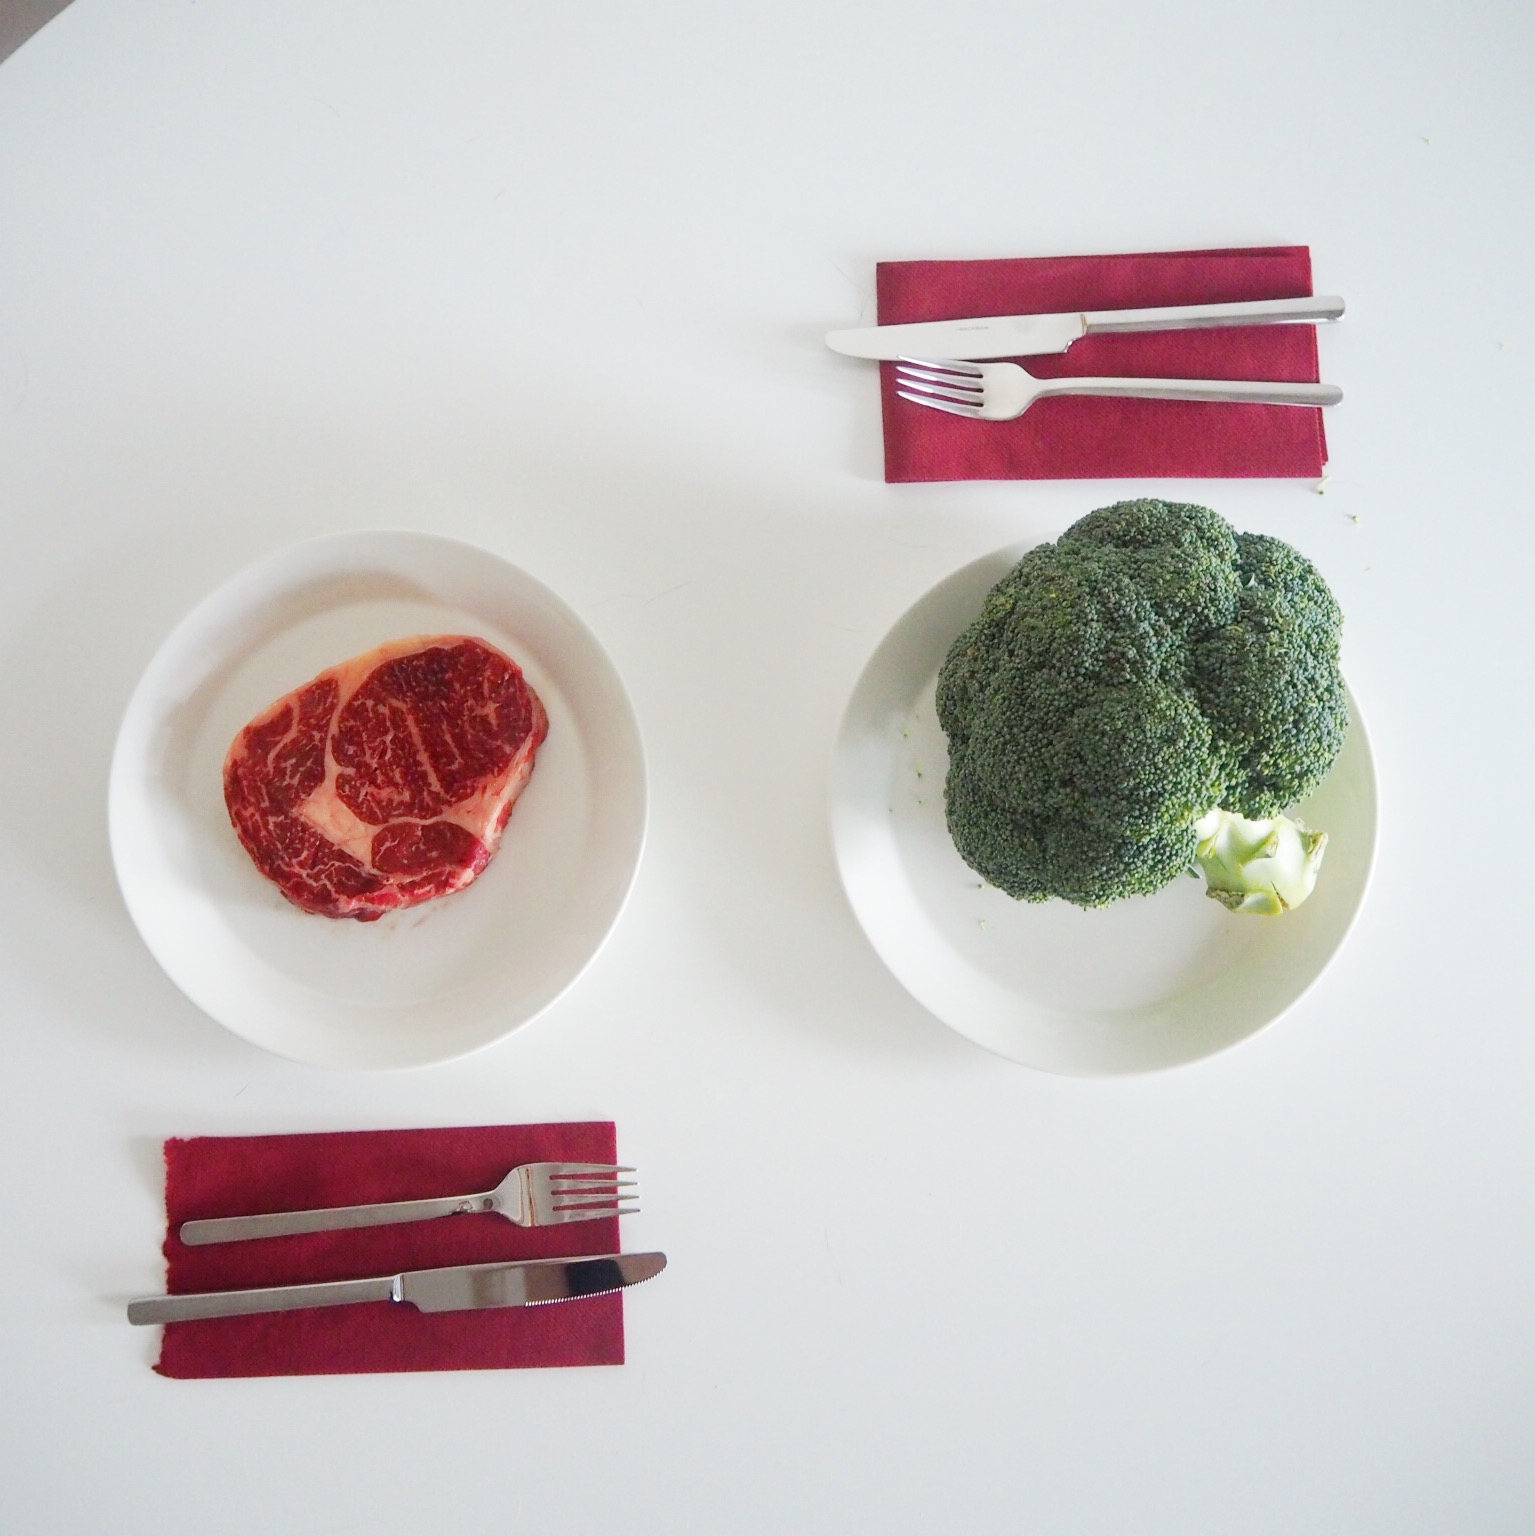 steak_broccoli